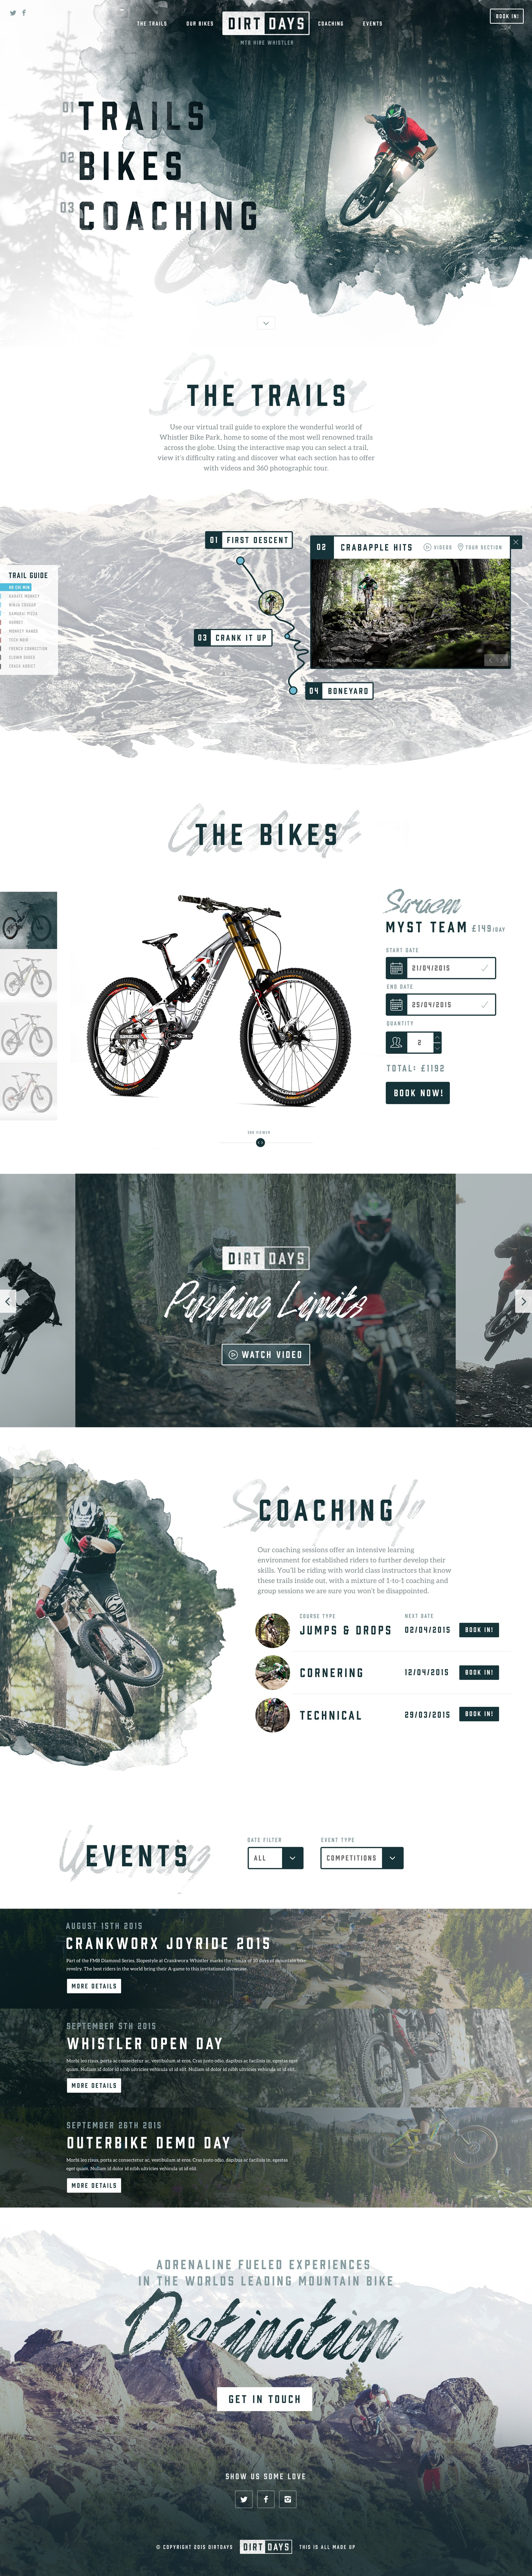 Dirtdays full concept